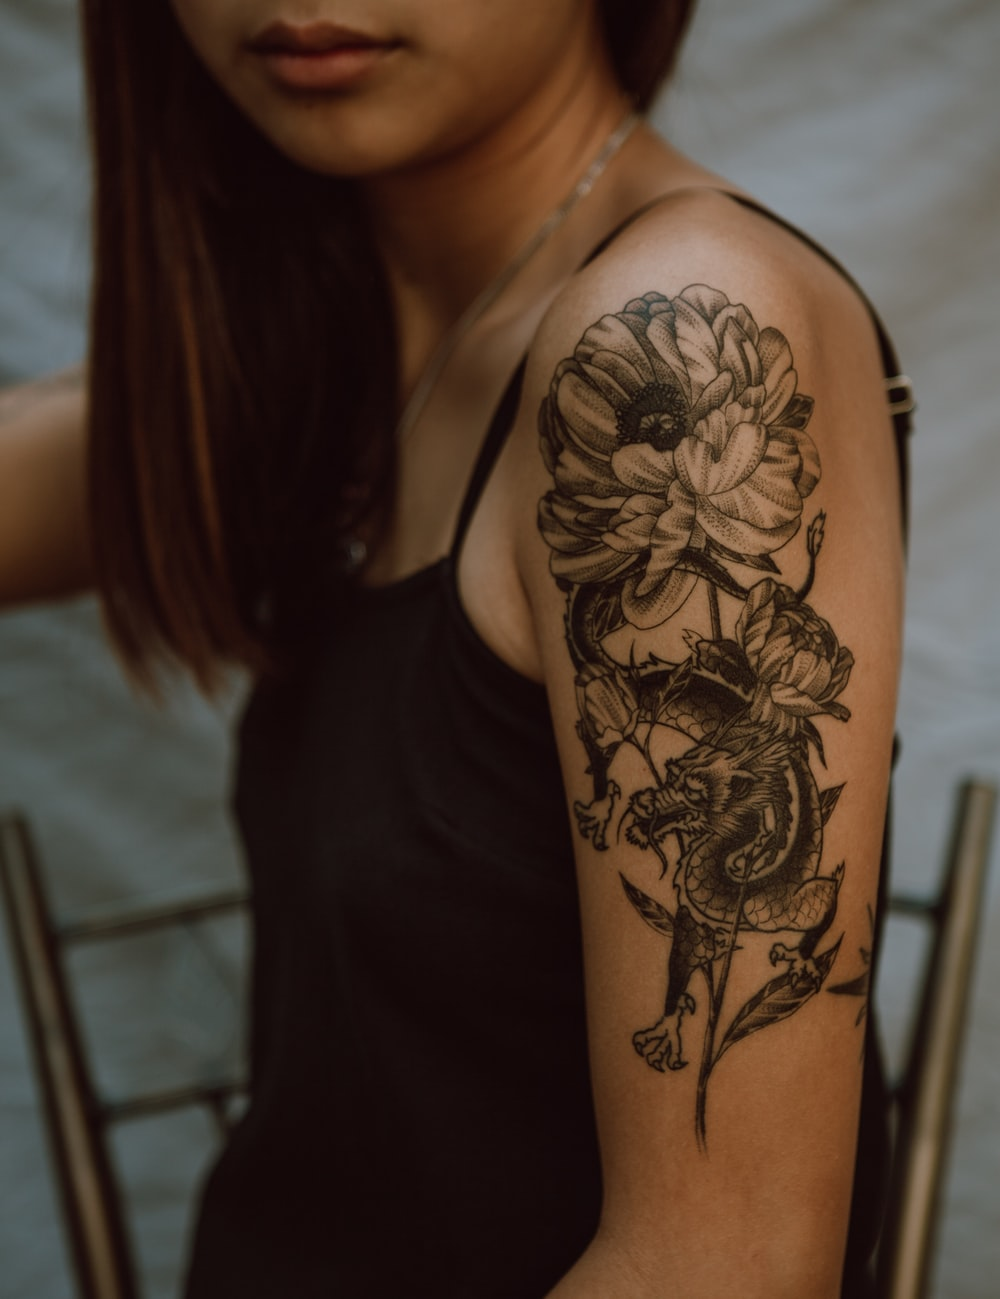 Tattoo Images Hq Download Free Images On Unsplash Thousands of free tattoo ideas, tattoo pictures, designs, tattoo art to choose from. tattoo images hq download free